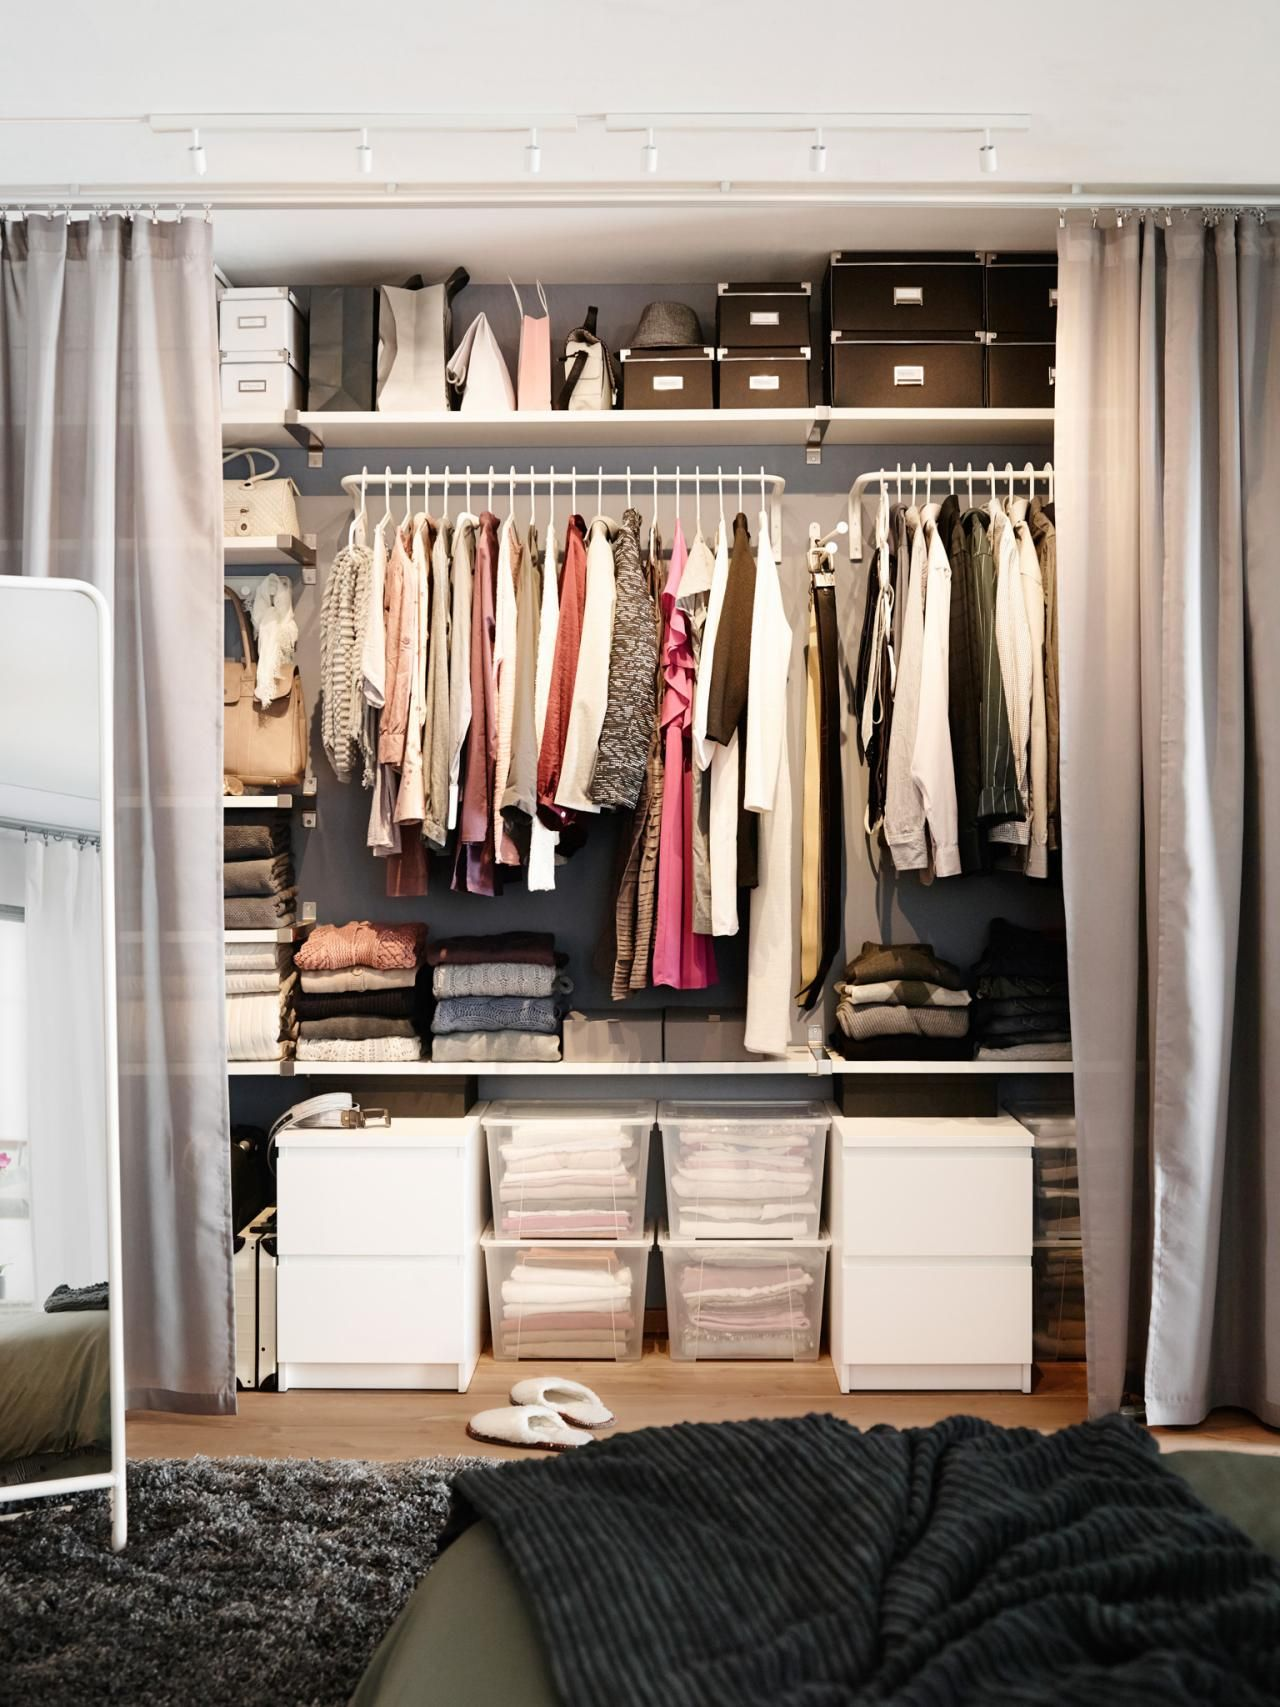 Closet Curtain Small Space Decorating Don Ts Home Organized Home Closet